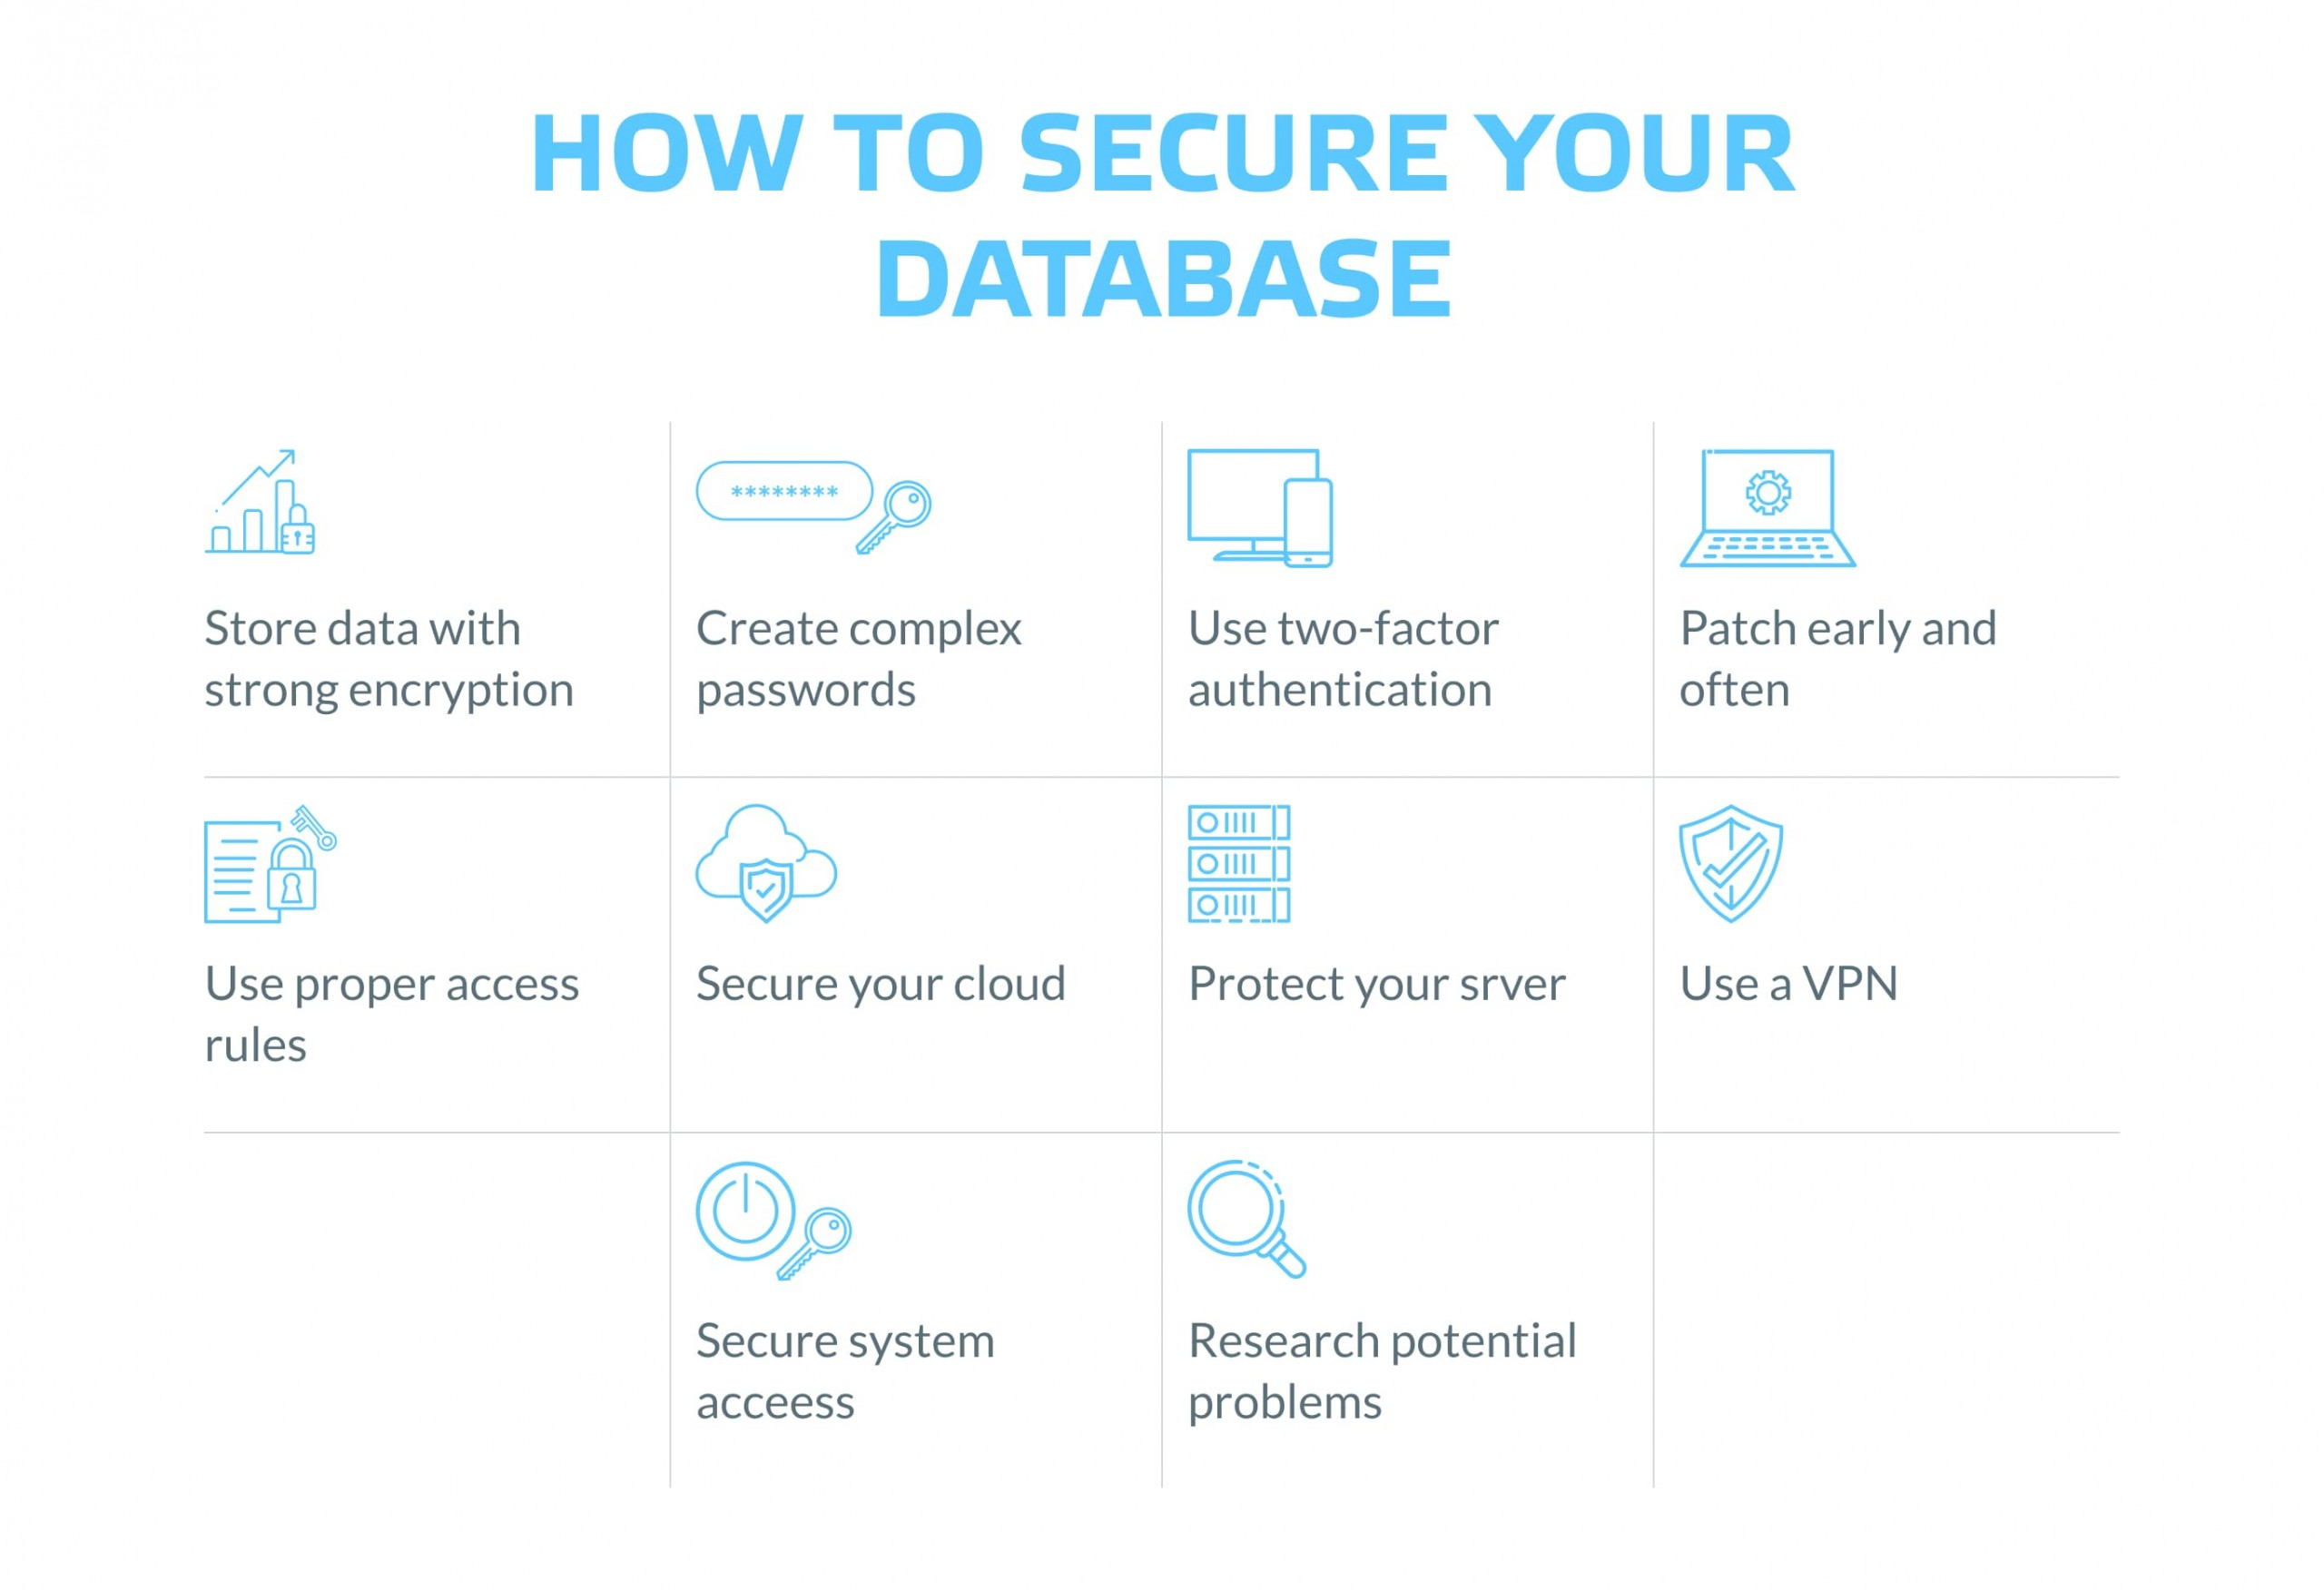 How to secure database?